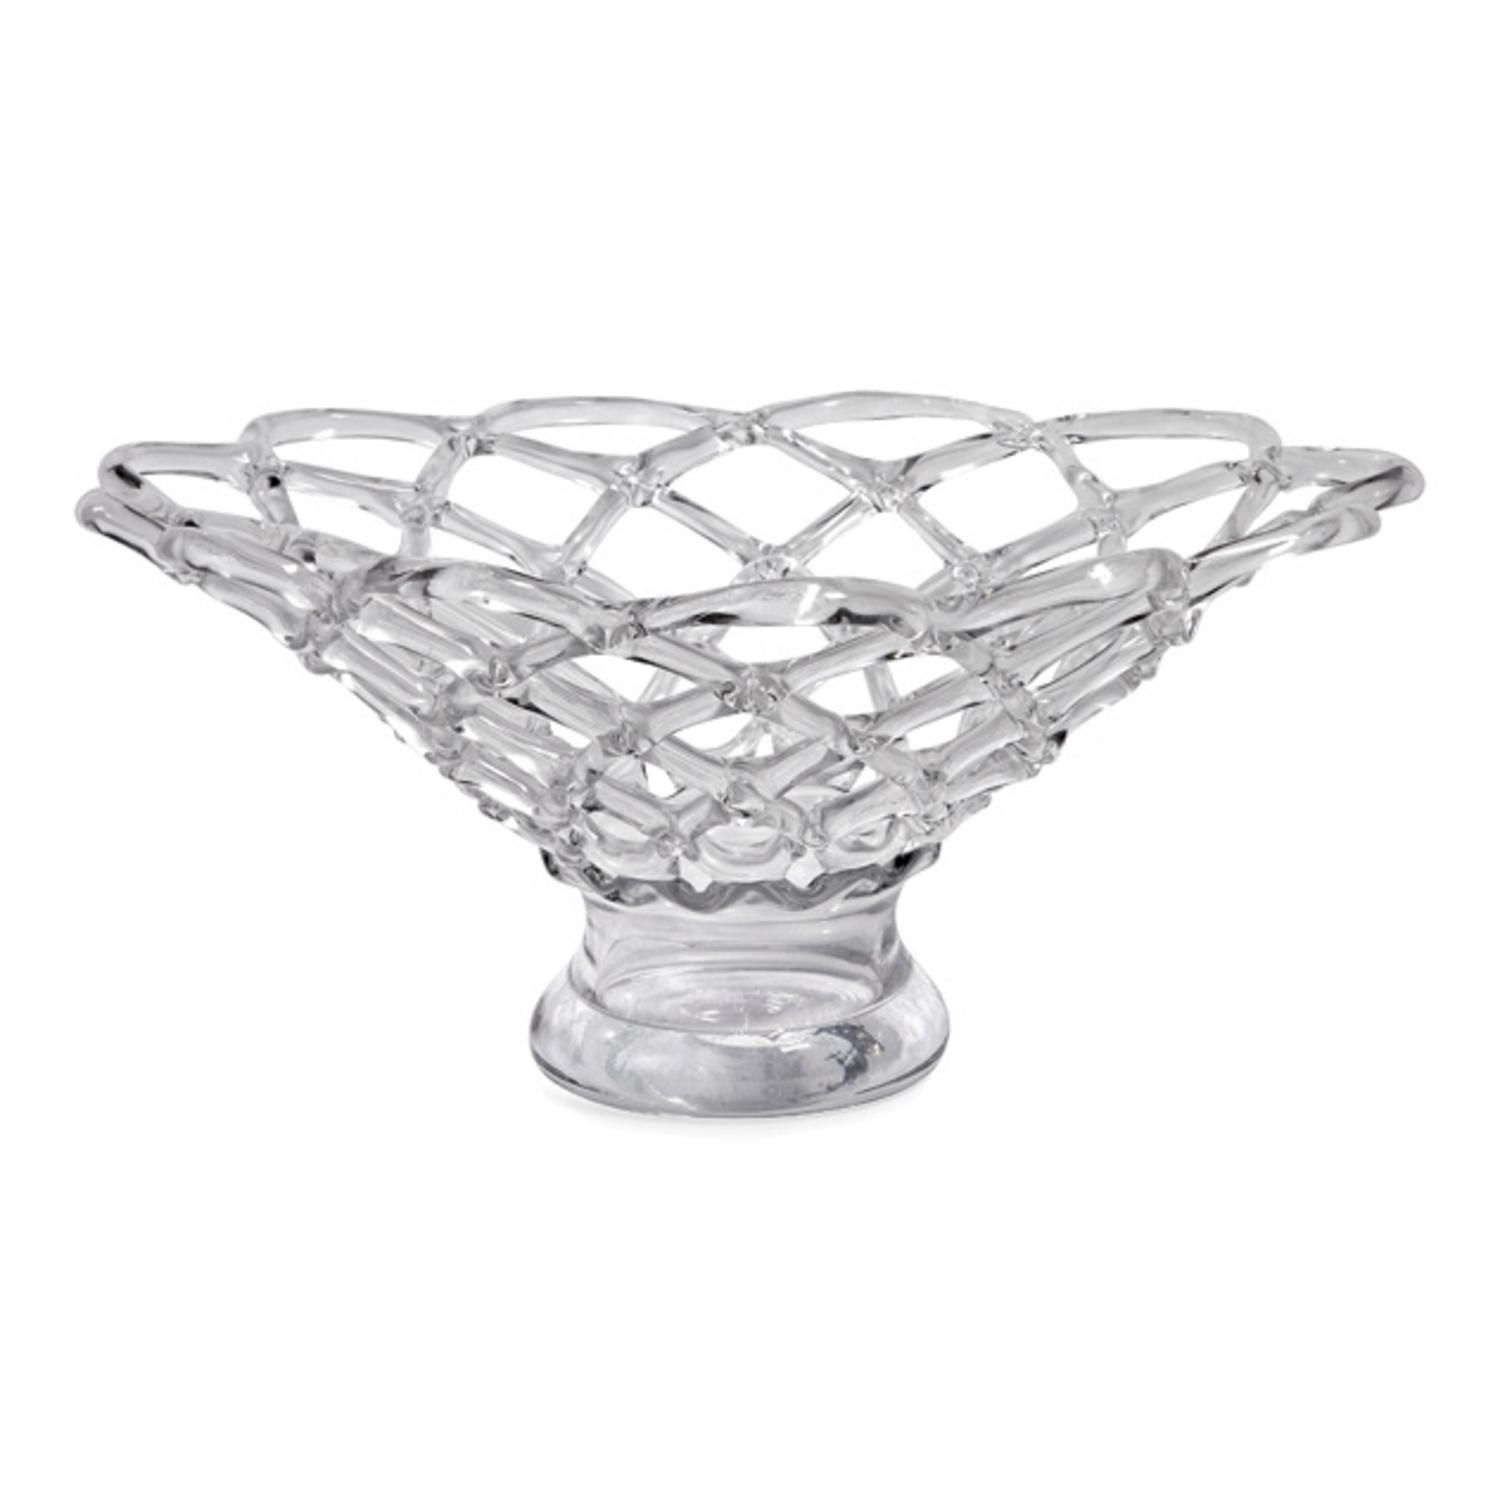 """21"""" Luxurious Large Weaved Decorative Hand Blown Glass Bowl by CC Home Furnishings"""